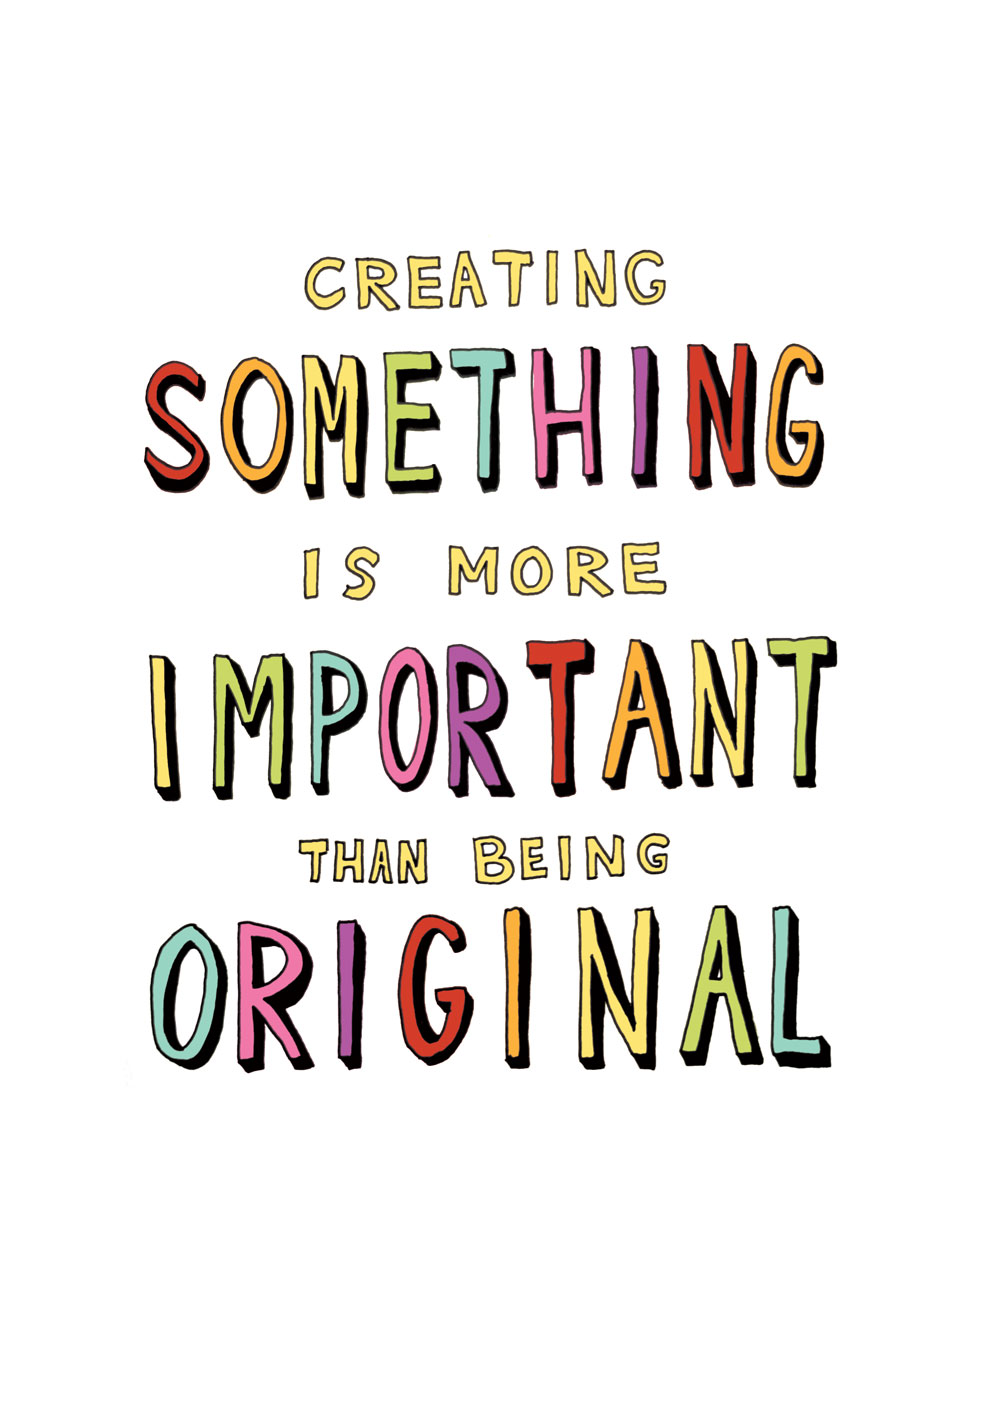 Marielle-creating-something-more-important-original